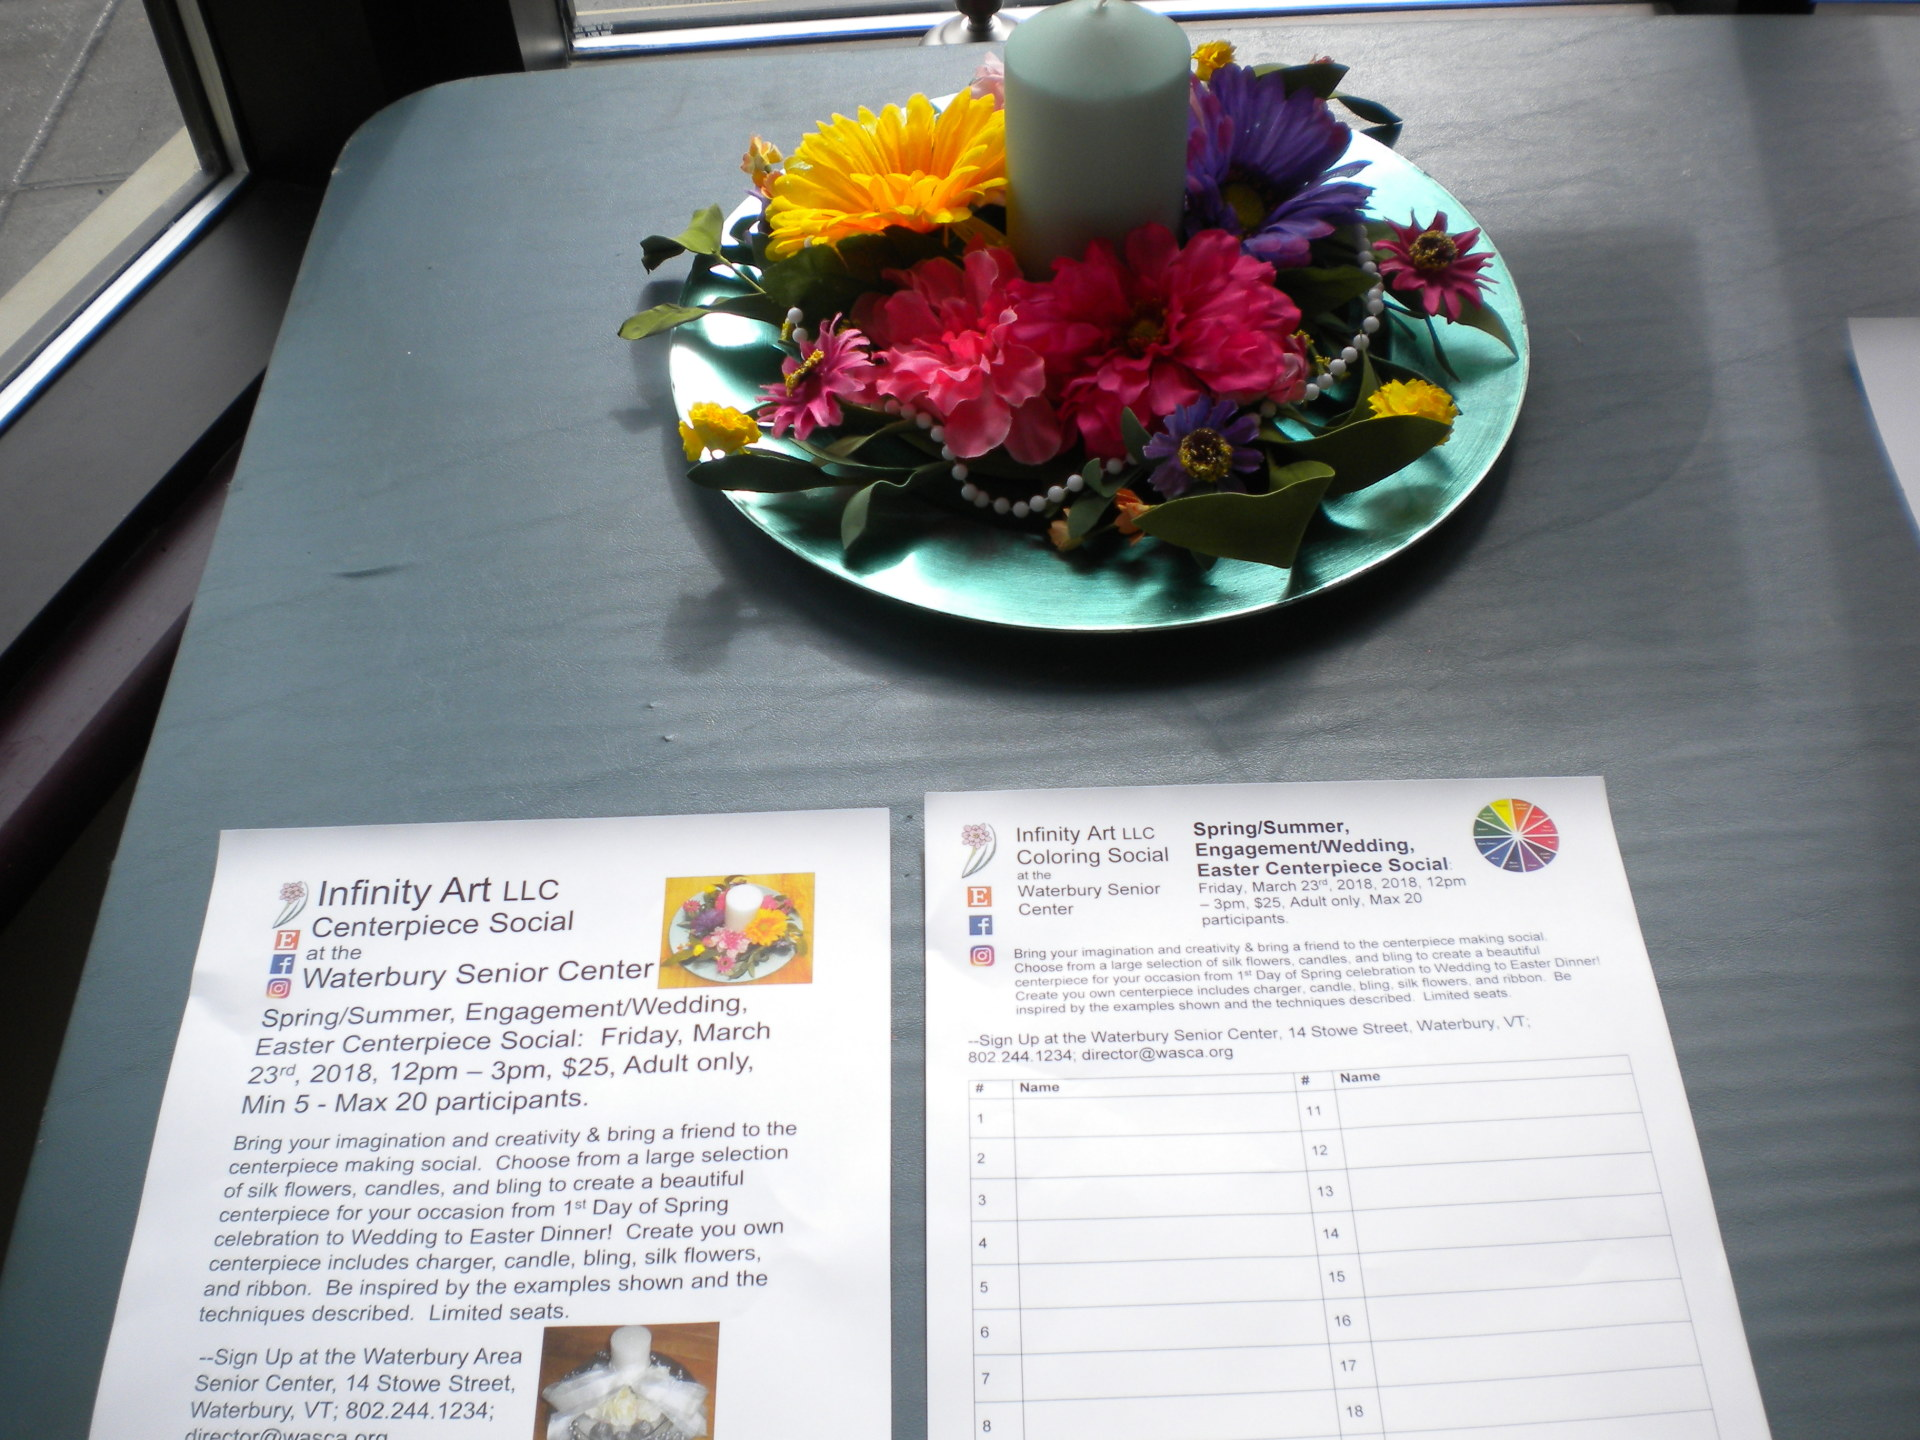 Photo of Centerpiece Social example and sign up sheet at the Waterbury Area Senior Center, VT.